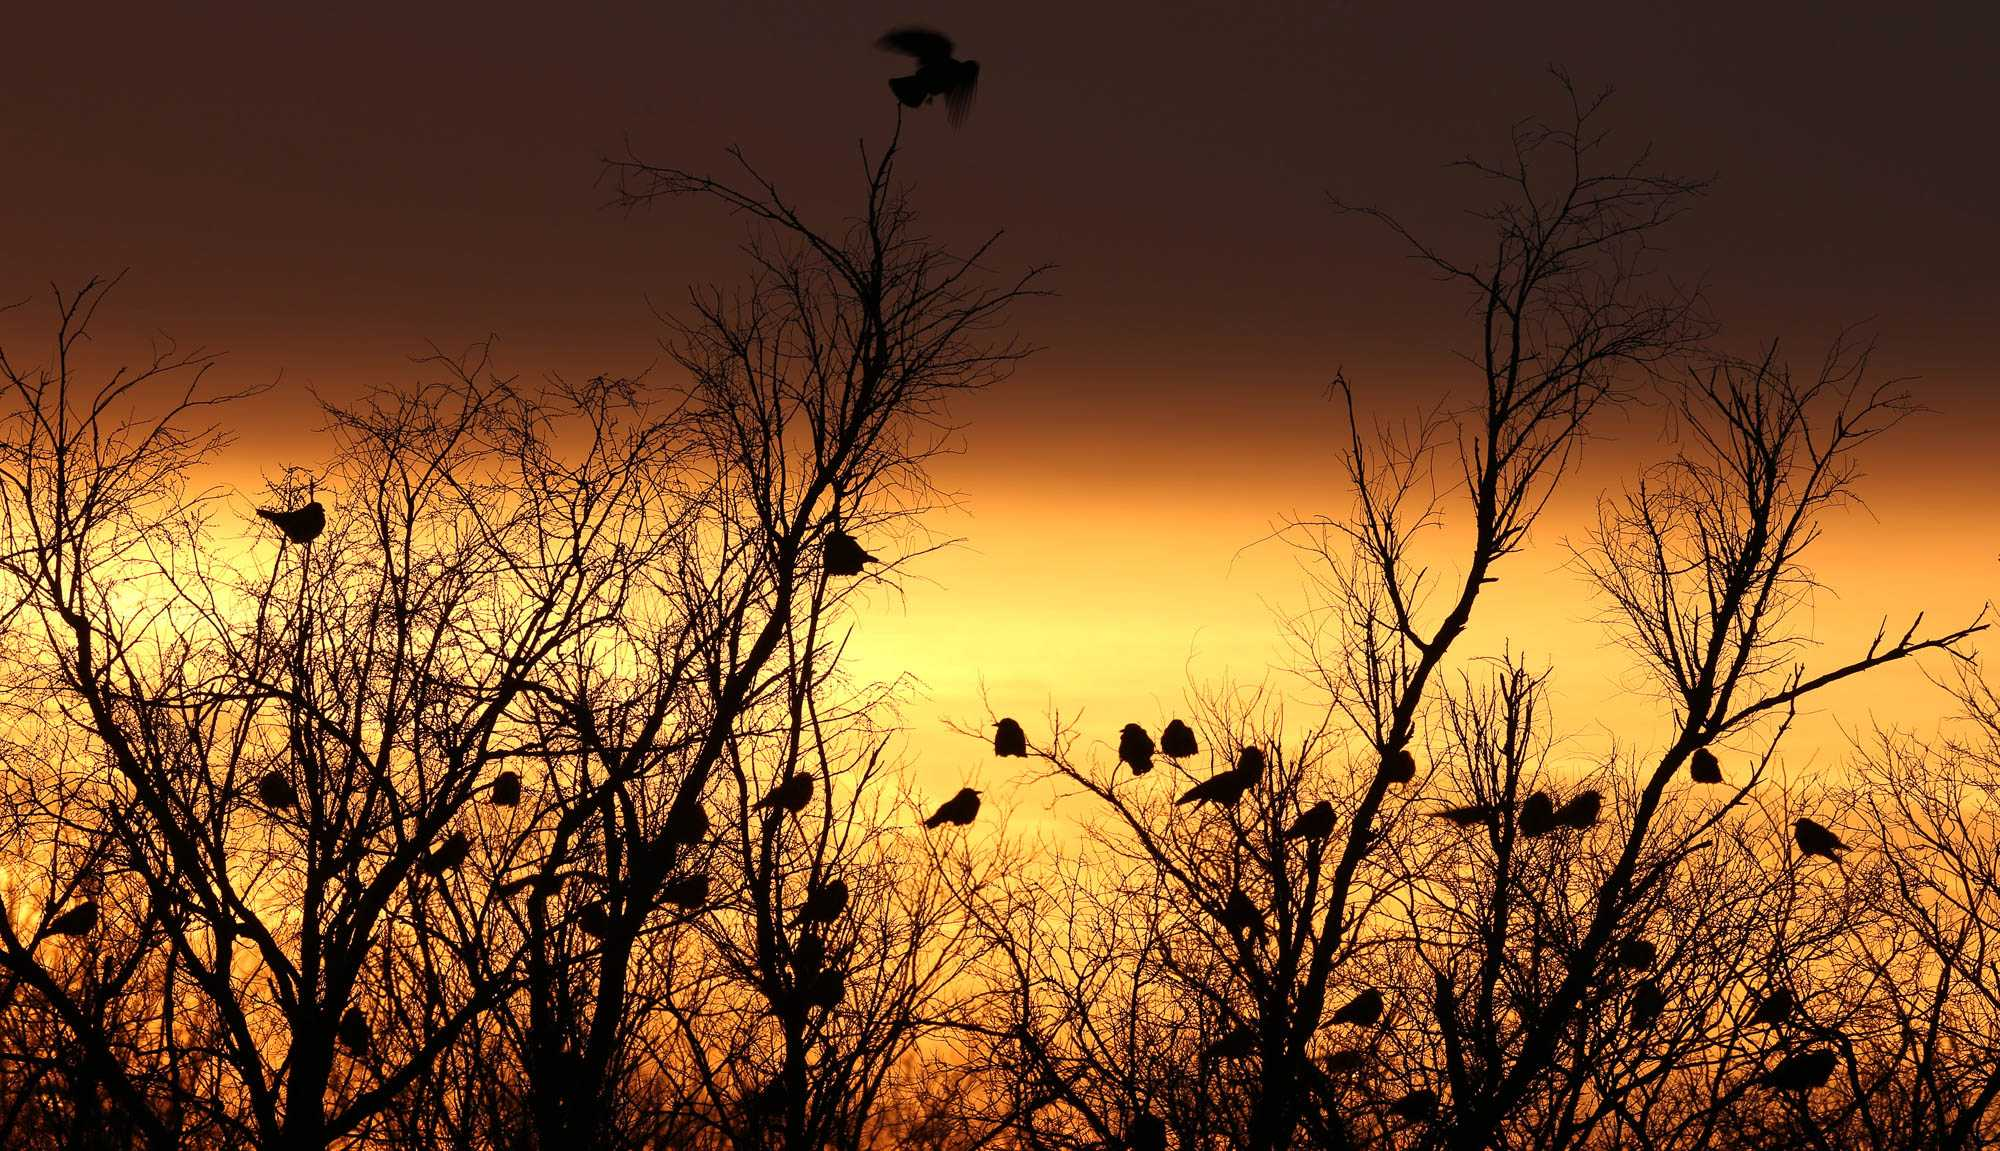 Crows flock along the Vermillion River in Danville, Illinois, January 24, 2013.